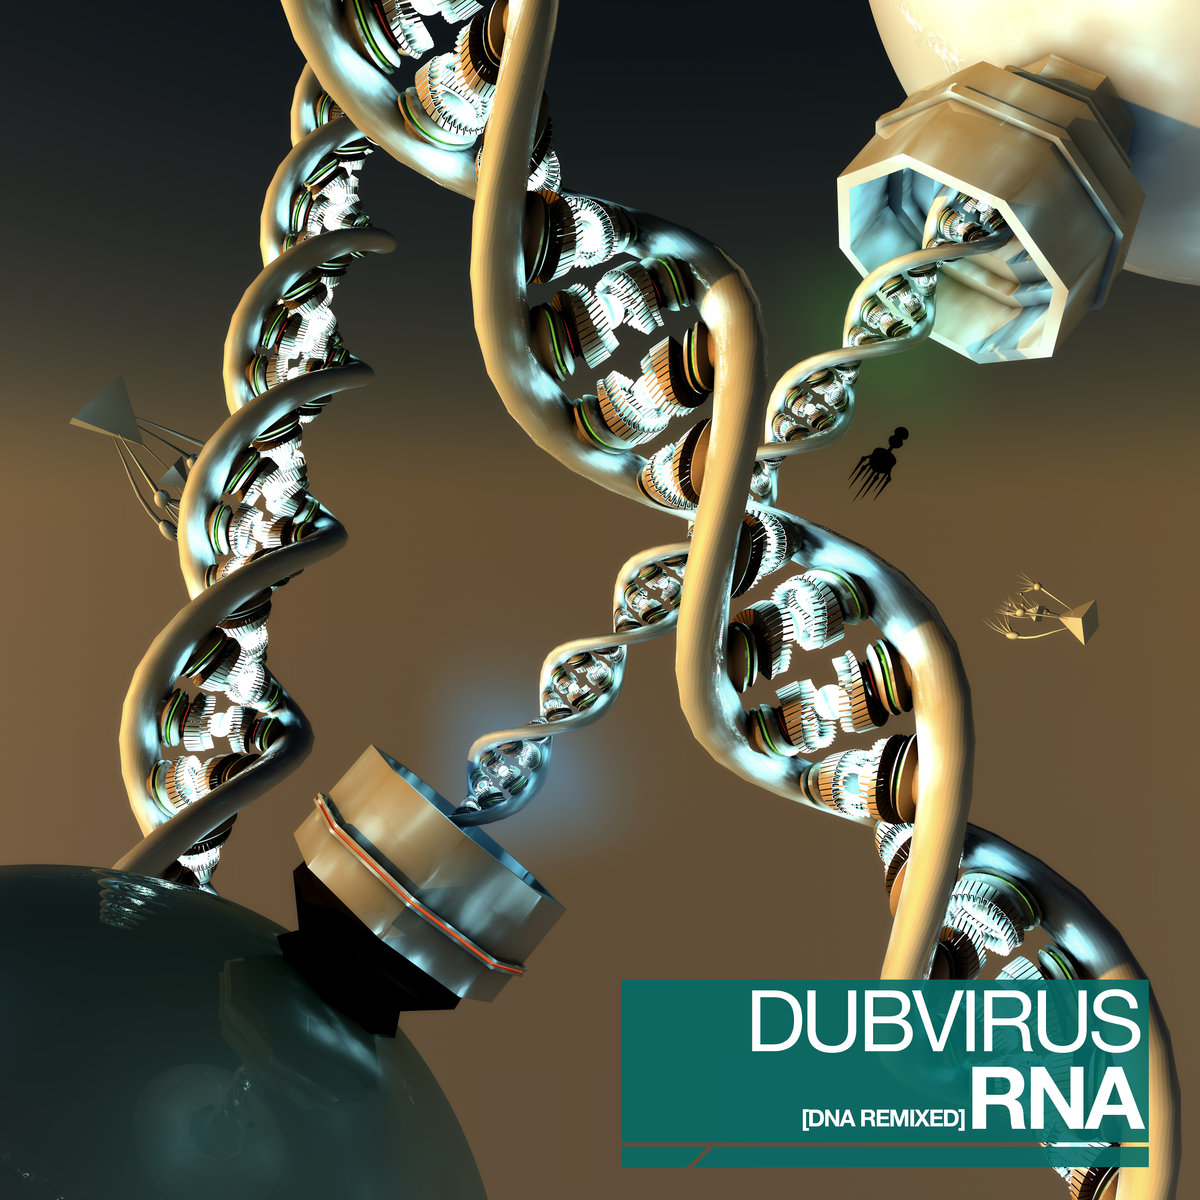 Dubvirus - Bridging The Gap (Conscious Kalling Remix) @ 'RNA (DNA Remixed)' album (bass, dubvirus)